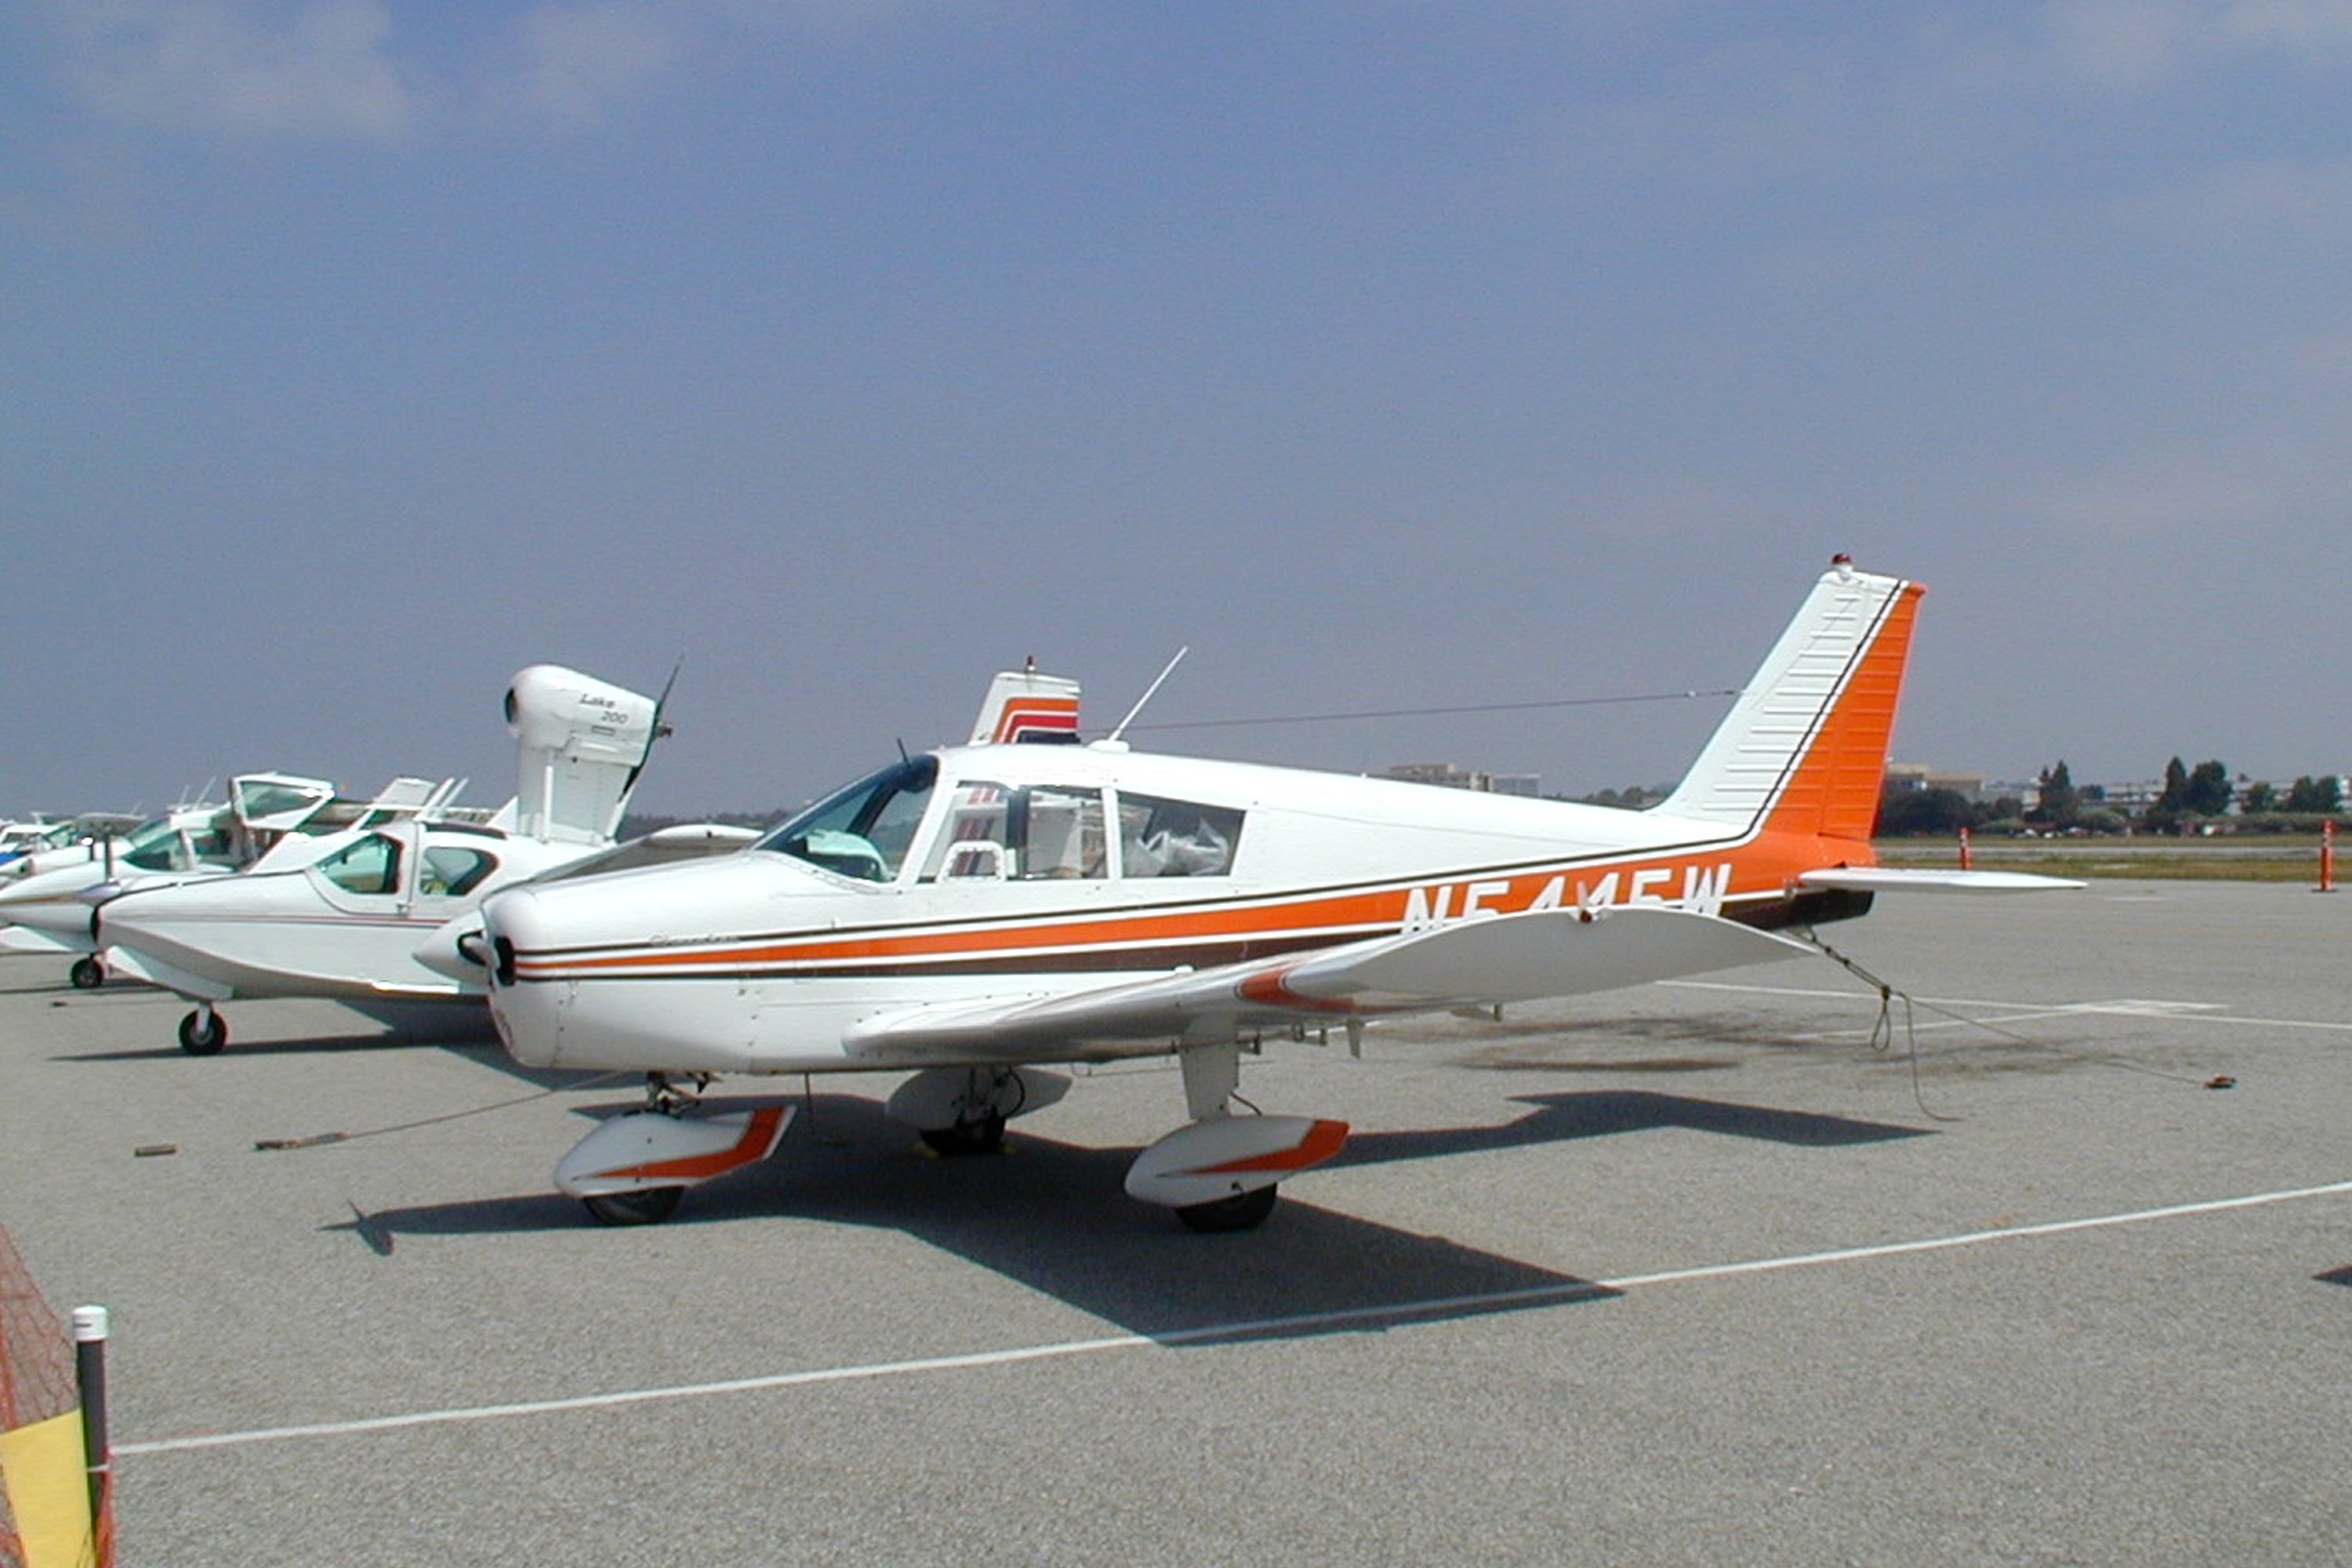 Piper PA-28-160 Cherokee 160 four-seat low-wing cabin monoplane